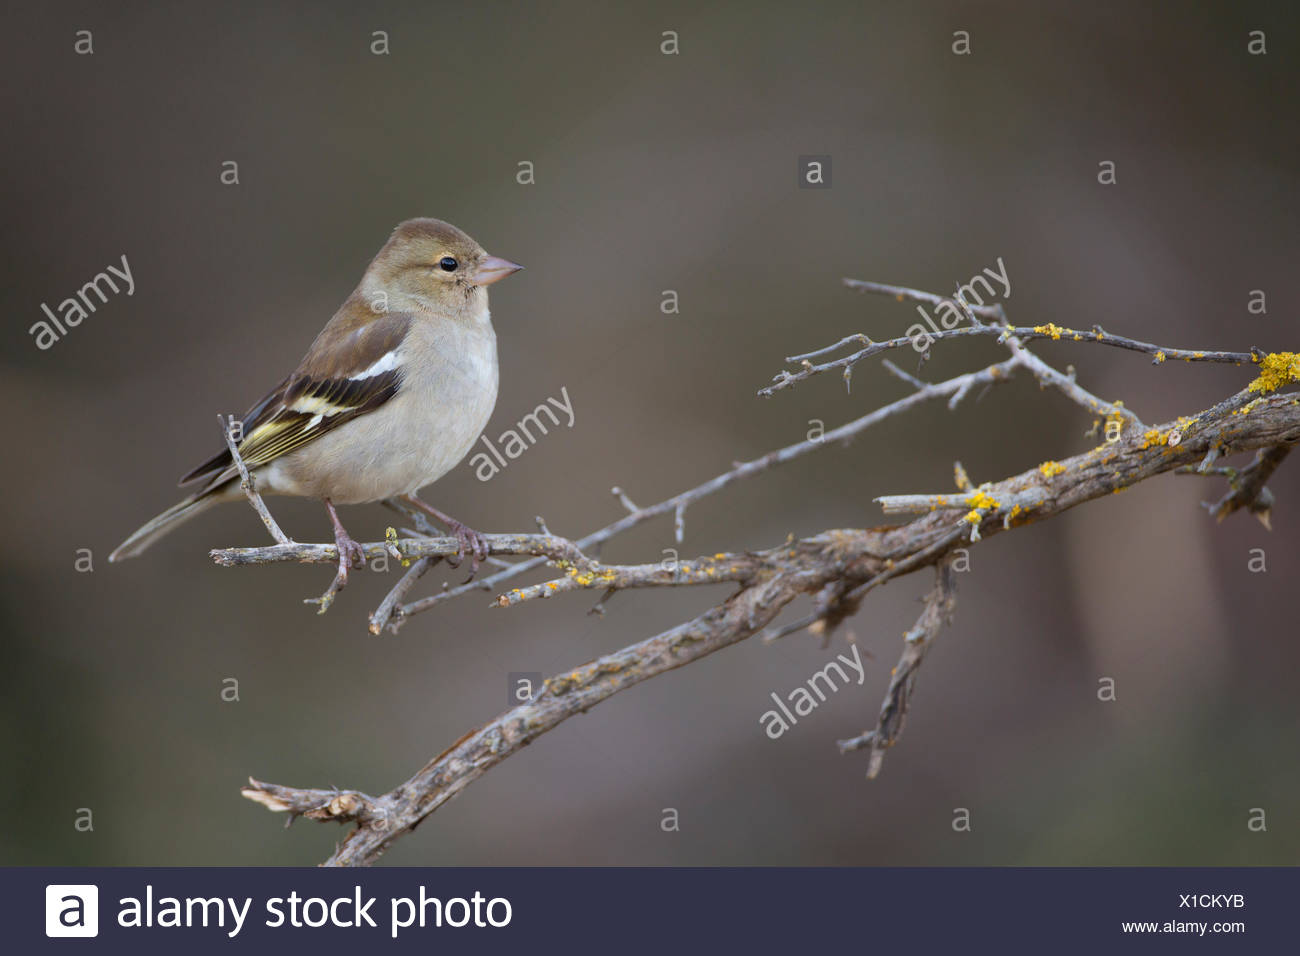 Female common chaffinch (Fringilla coelebs) perched on a branch. Chaffinches are partial migratory birds that eat mainly seeds. - Stock Image